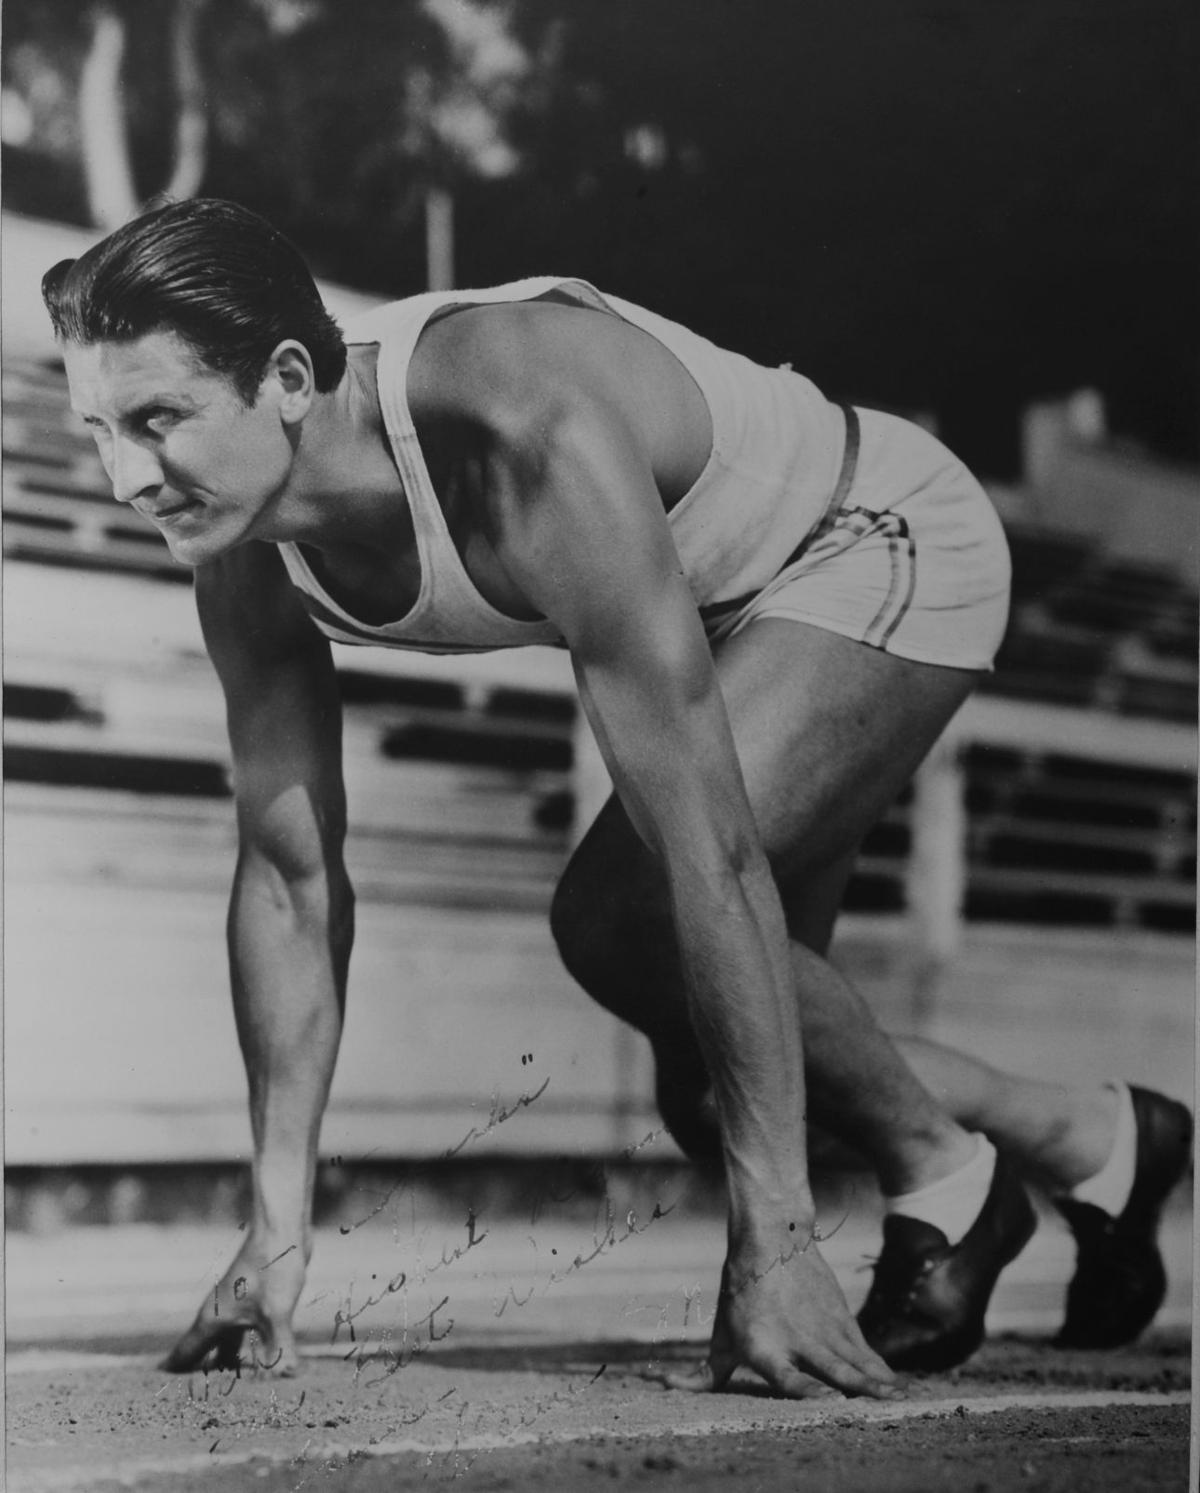 Simla 1936 Olympic decathlon champ Glenn Morris reached dizzying heights before fall